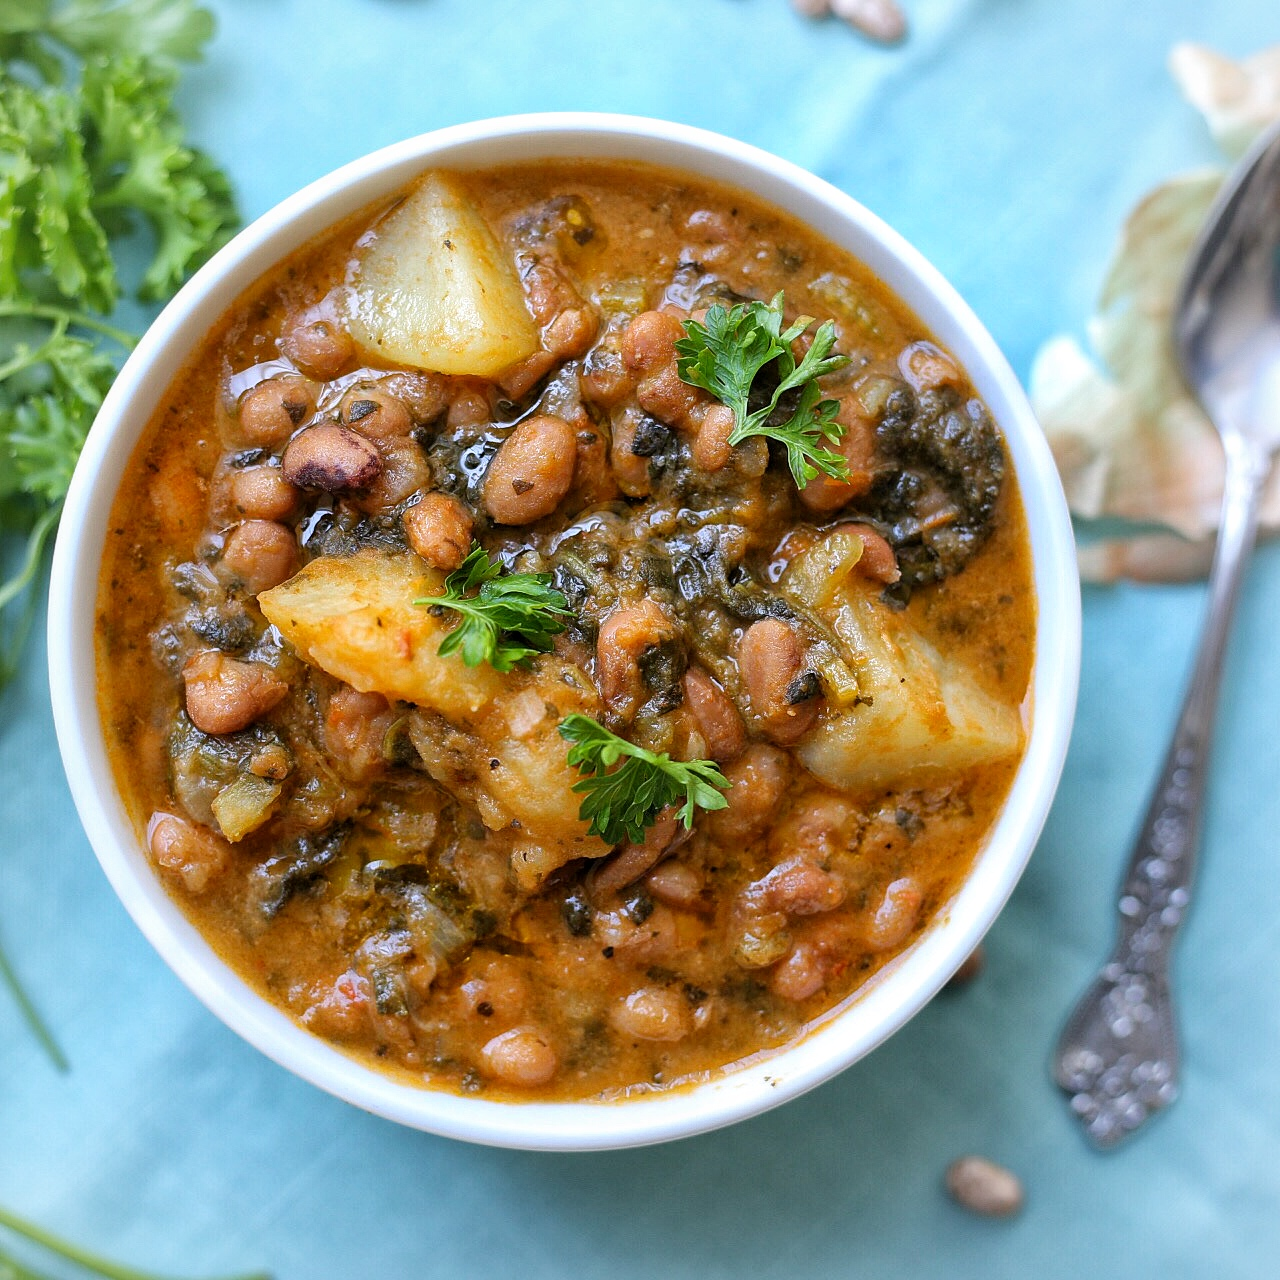 Potatoes and pinto beans stew